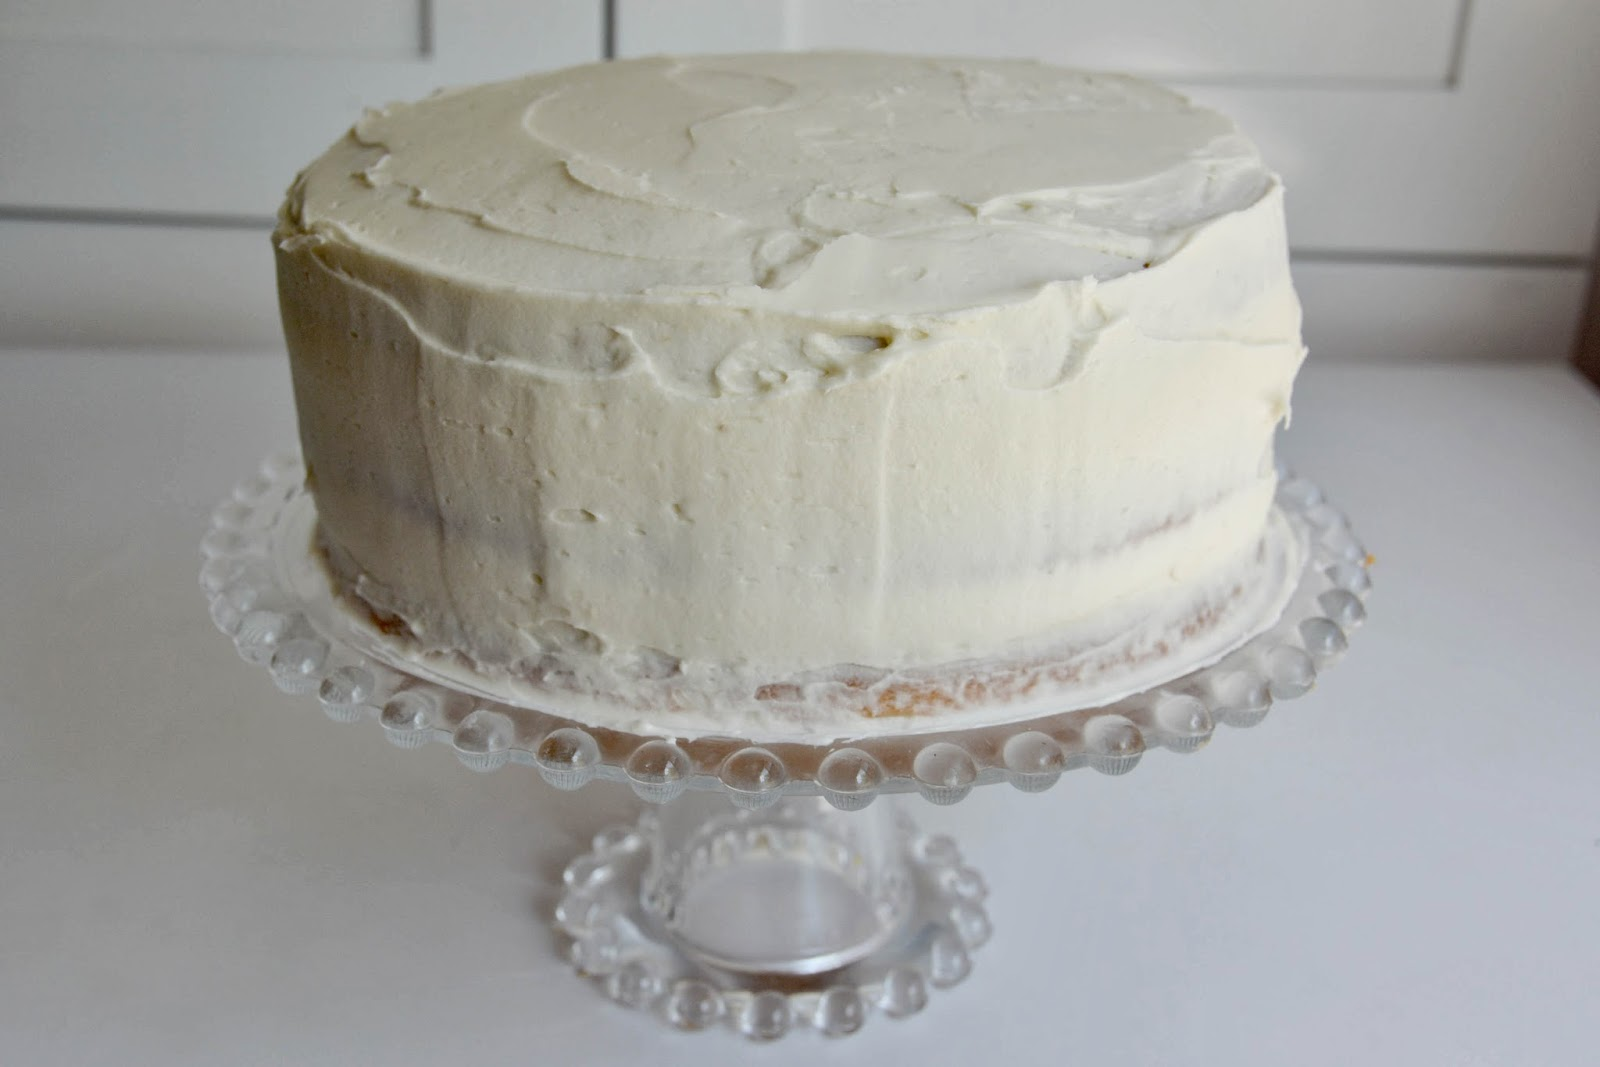 I Started With Three 9 Layers Of Almond Cake This Recipe Which Varied By Substituting 1 Cup Homemade Flour Ground Blanched Almonds For The